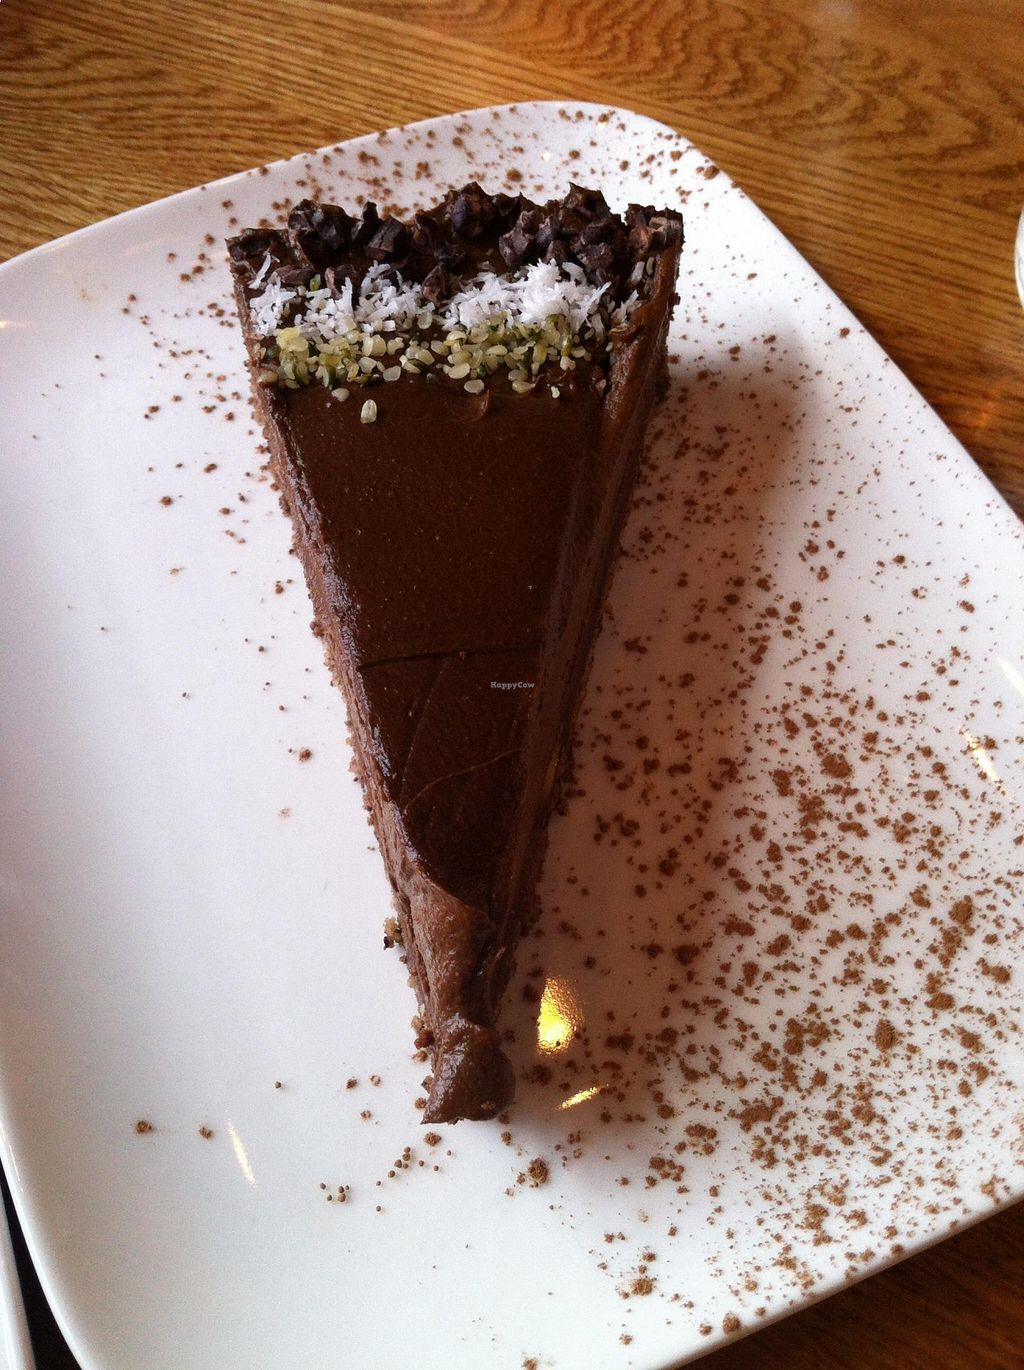 "Photo of Zend Conscious Lounge  by <a href=""/members/profile/vegan%20frog"">vegan frog</a> <br/>Chocolate torte <br/> August 22, 2015  - <a href='/contact/abuse/image/60722/114754'>Report</a>"